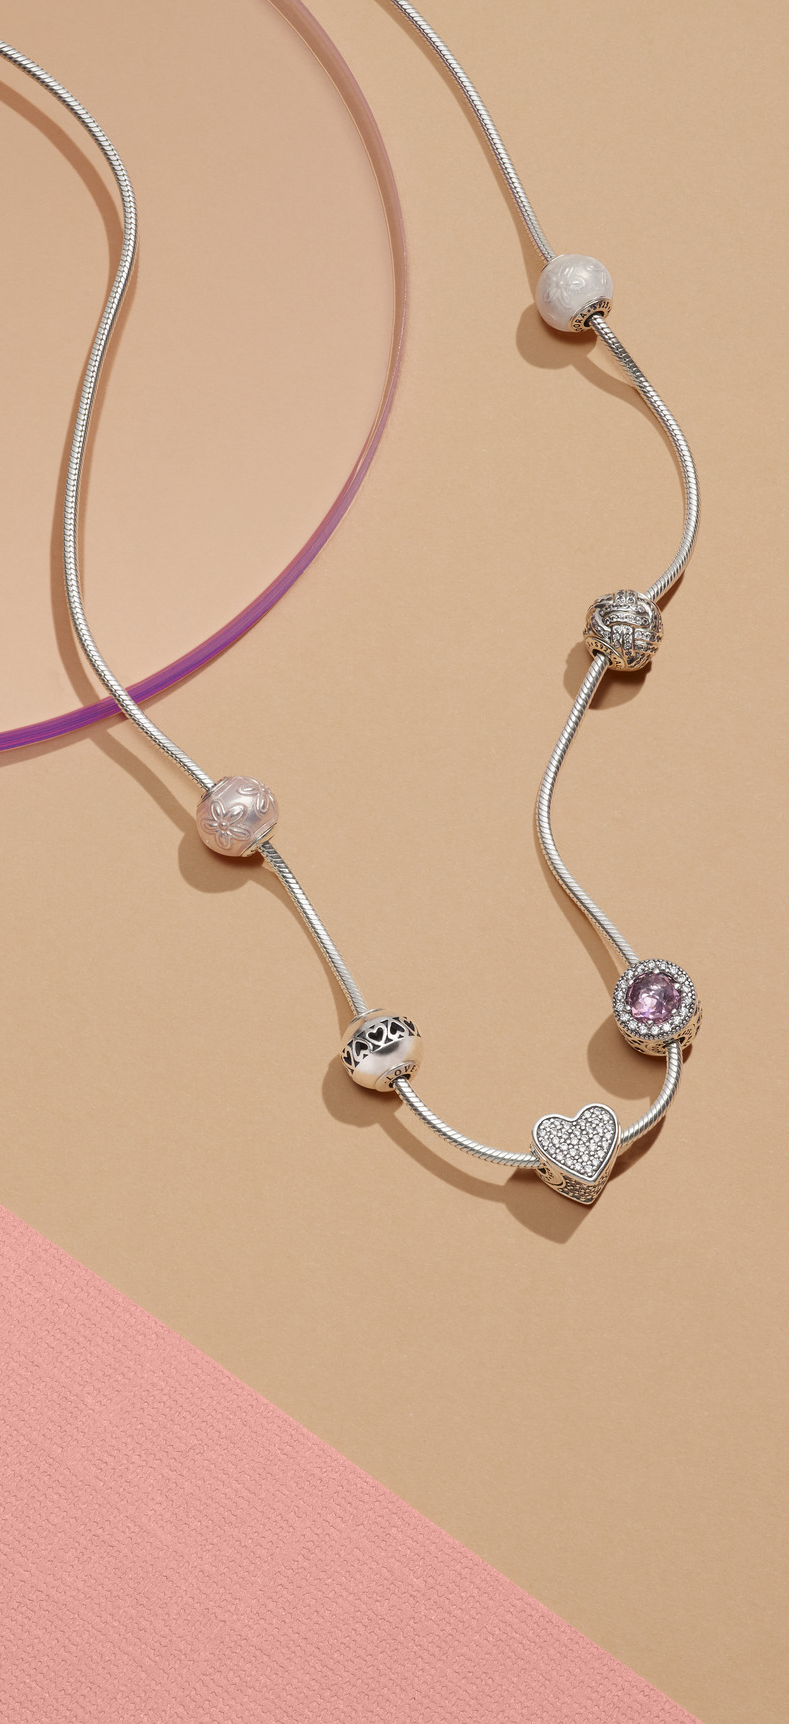 3eda82ff7 Express the essence of her with the PANDORA Essence Collection necklace  carefully crafted from sterling silver.